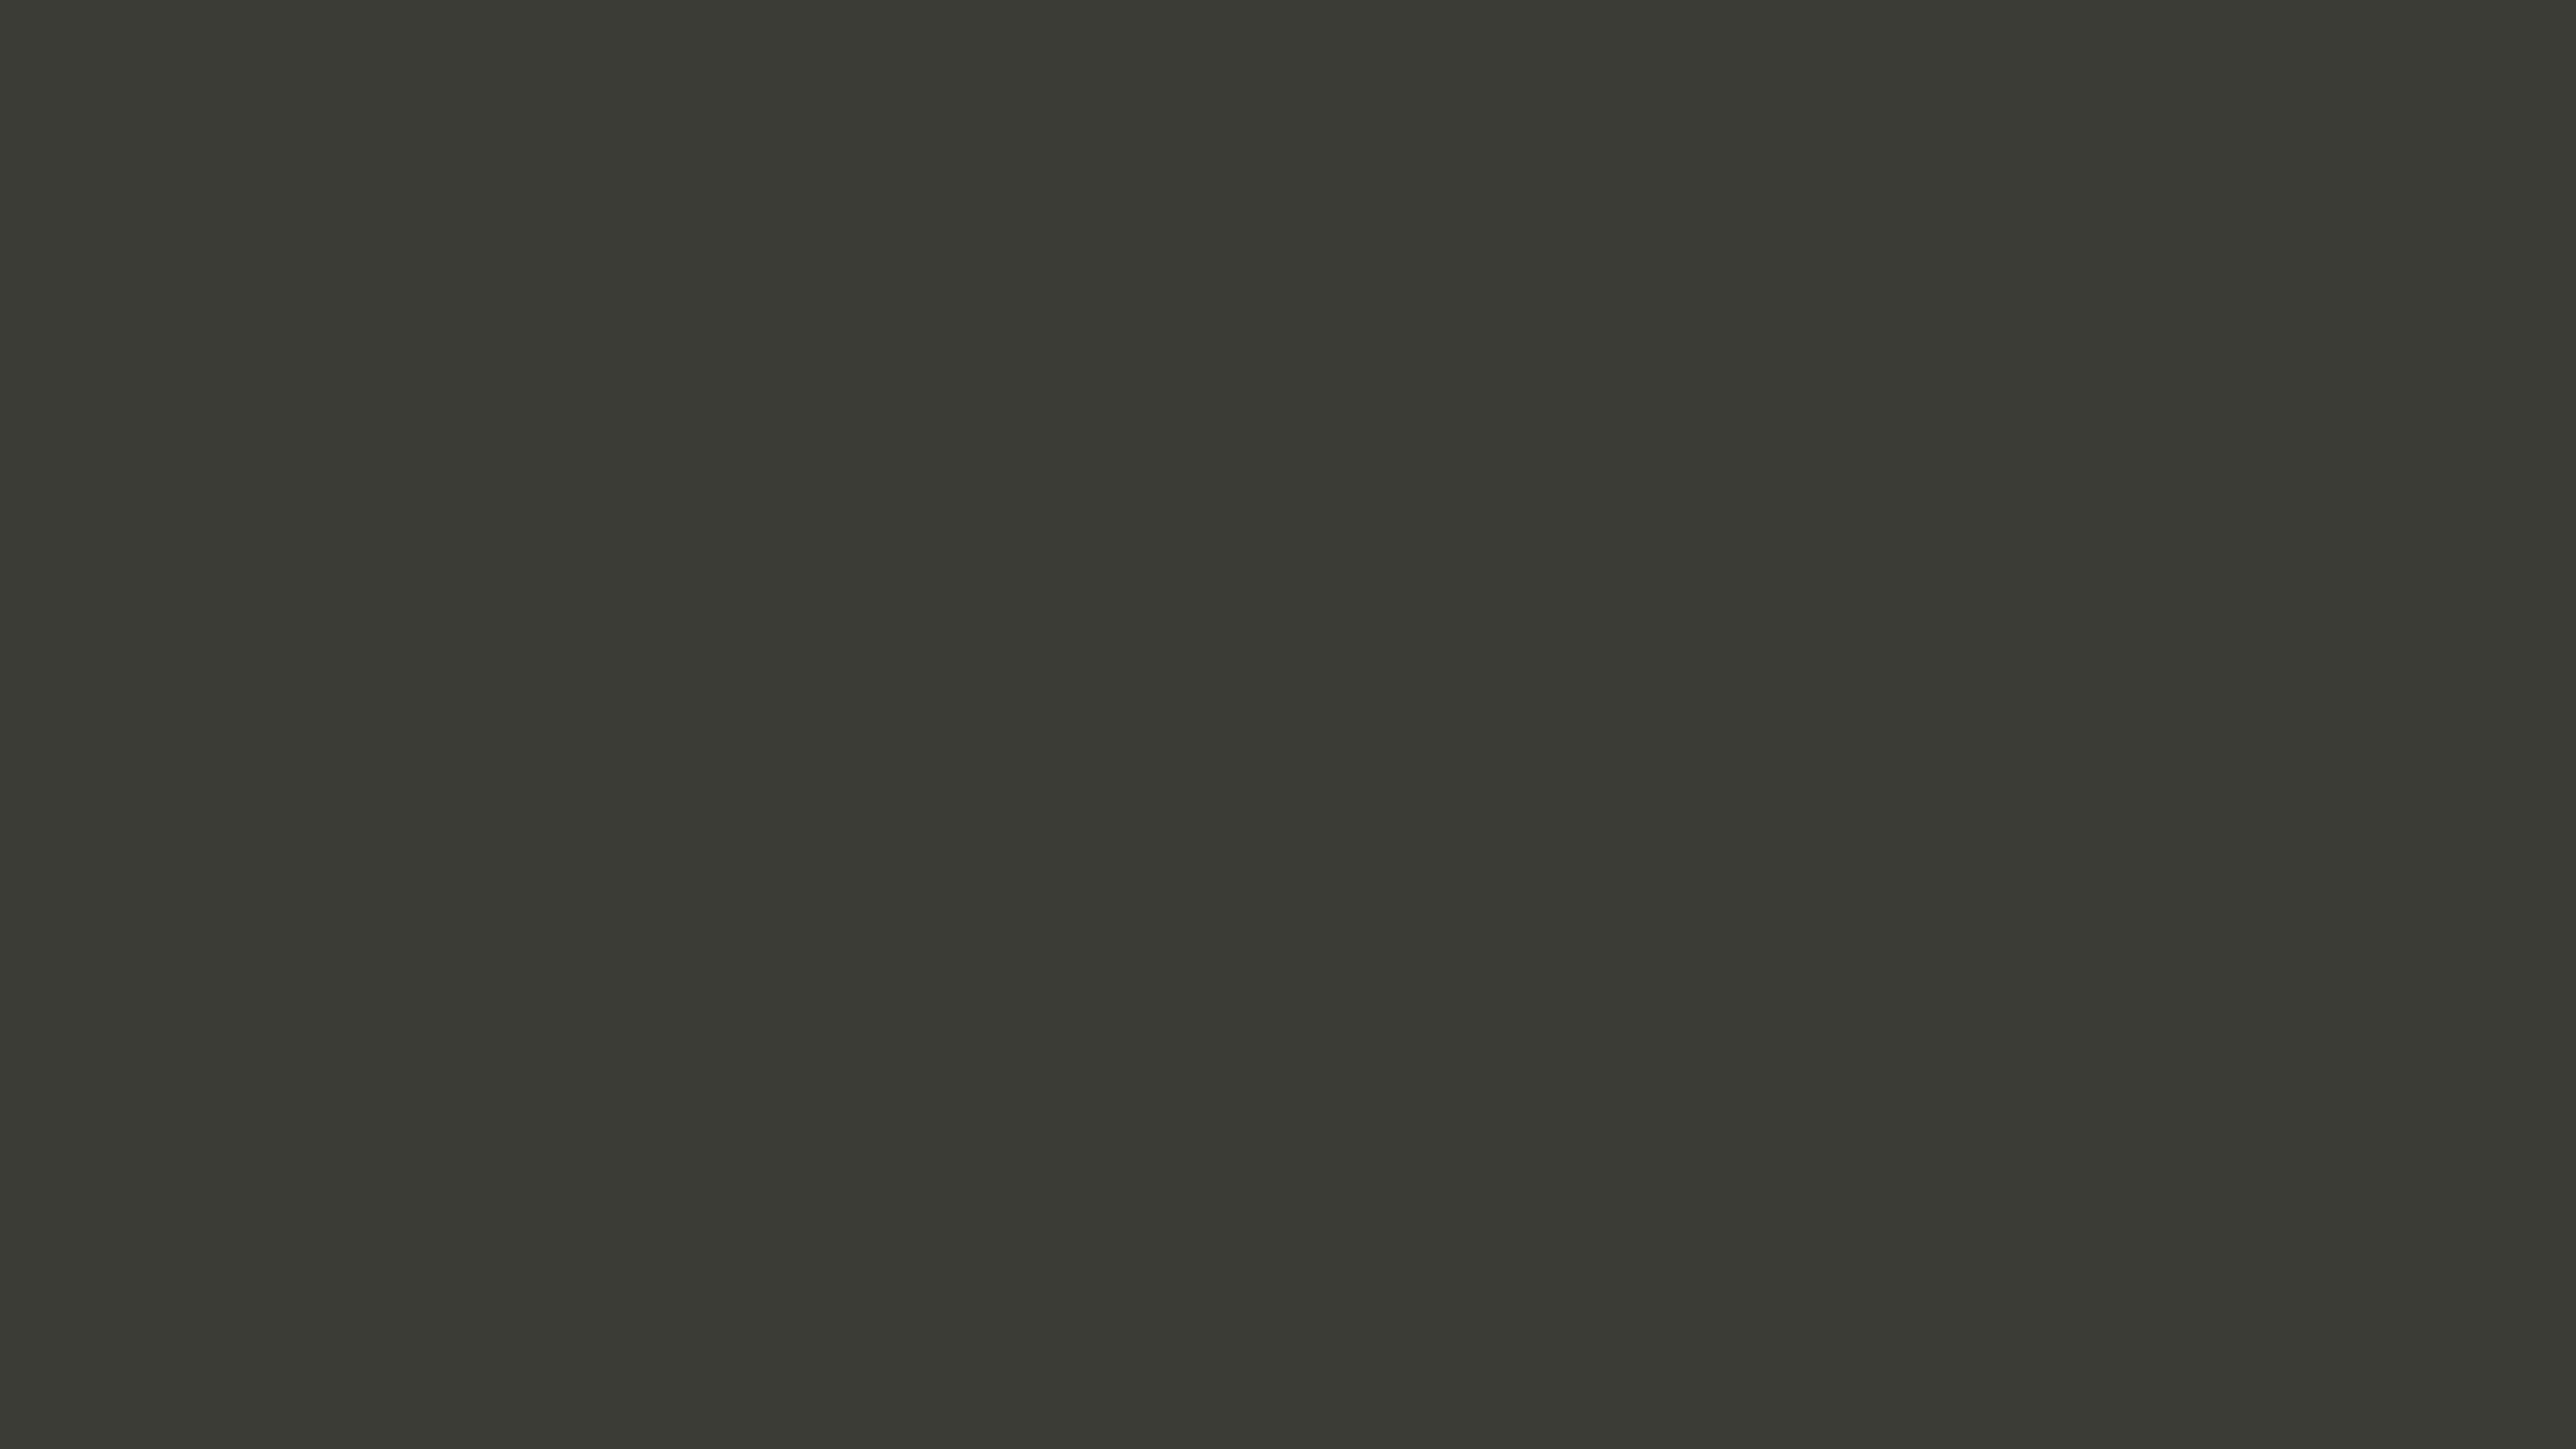 5120x2880 Black Olive Solid Color Background